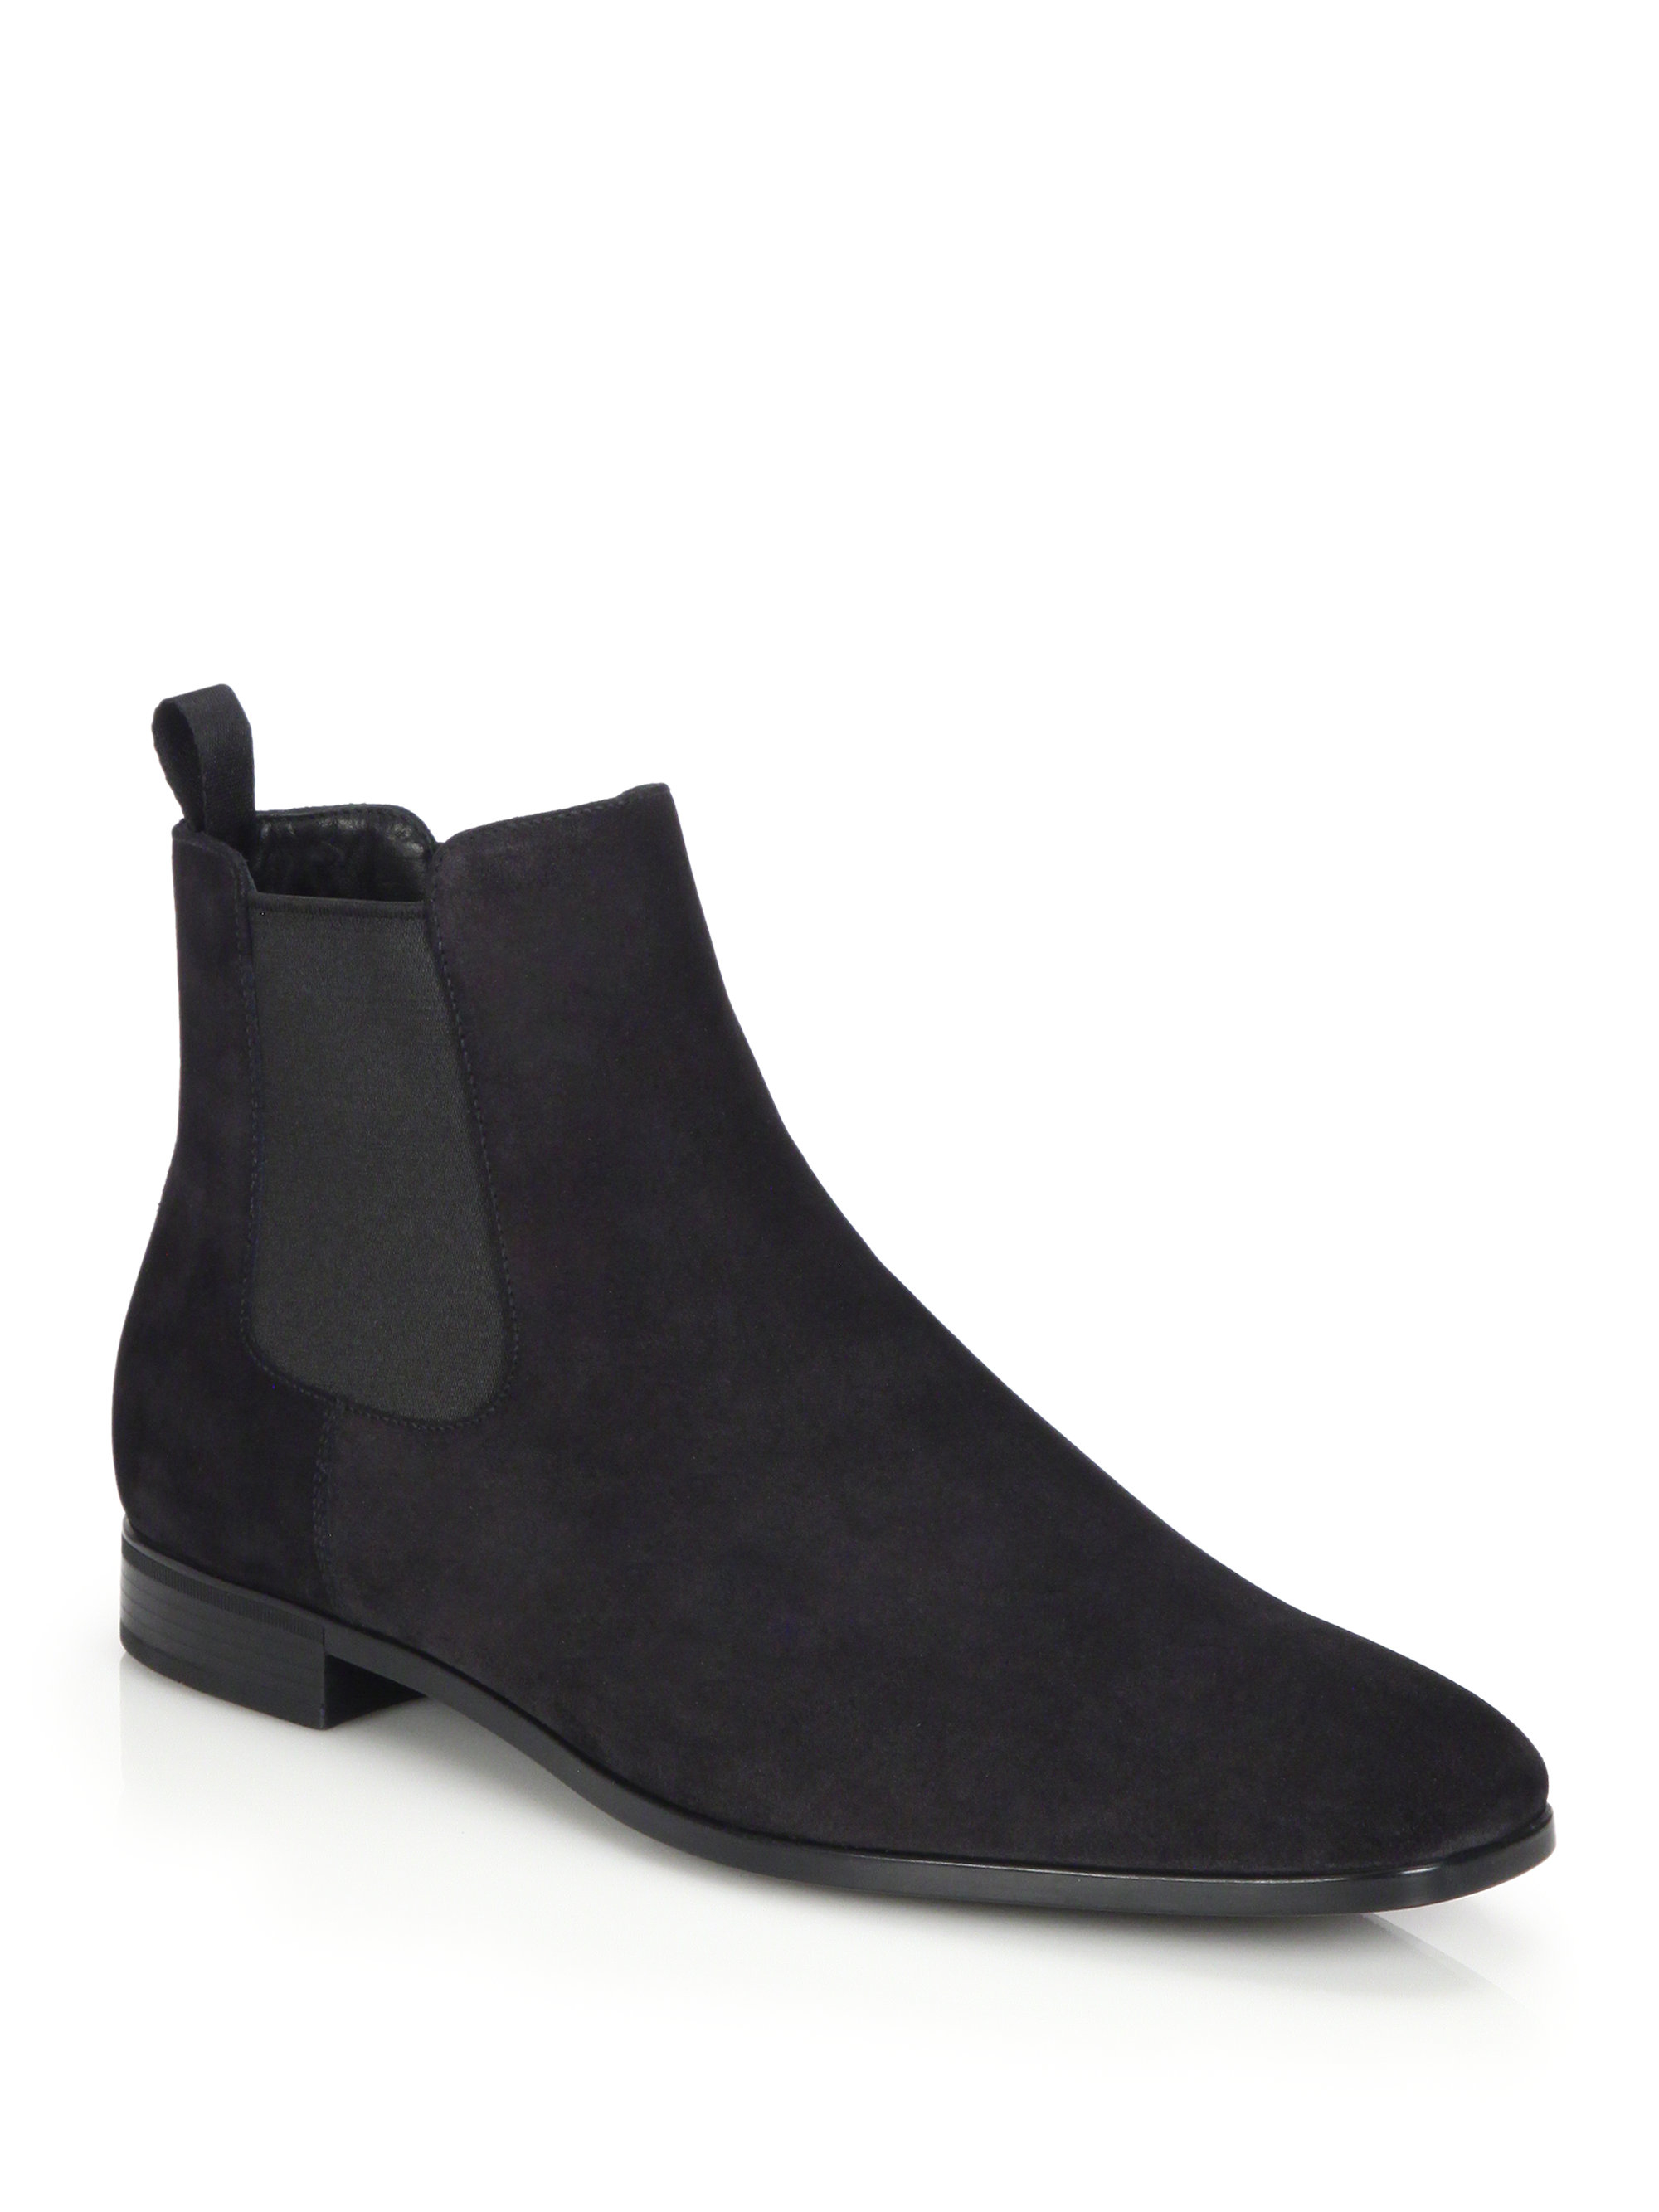 Prada Suede Chelsea Boots In Black For Men Lyst